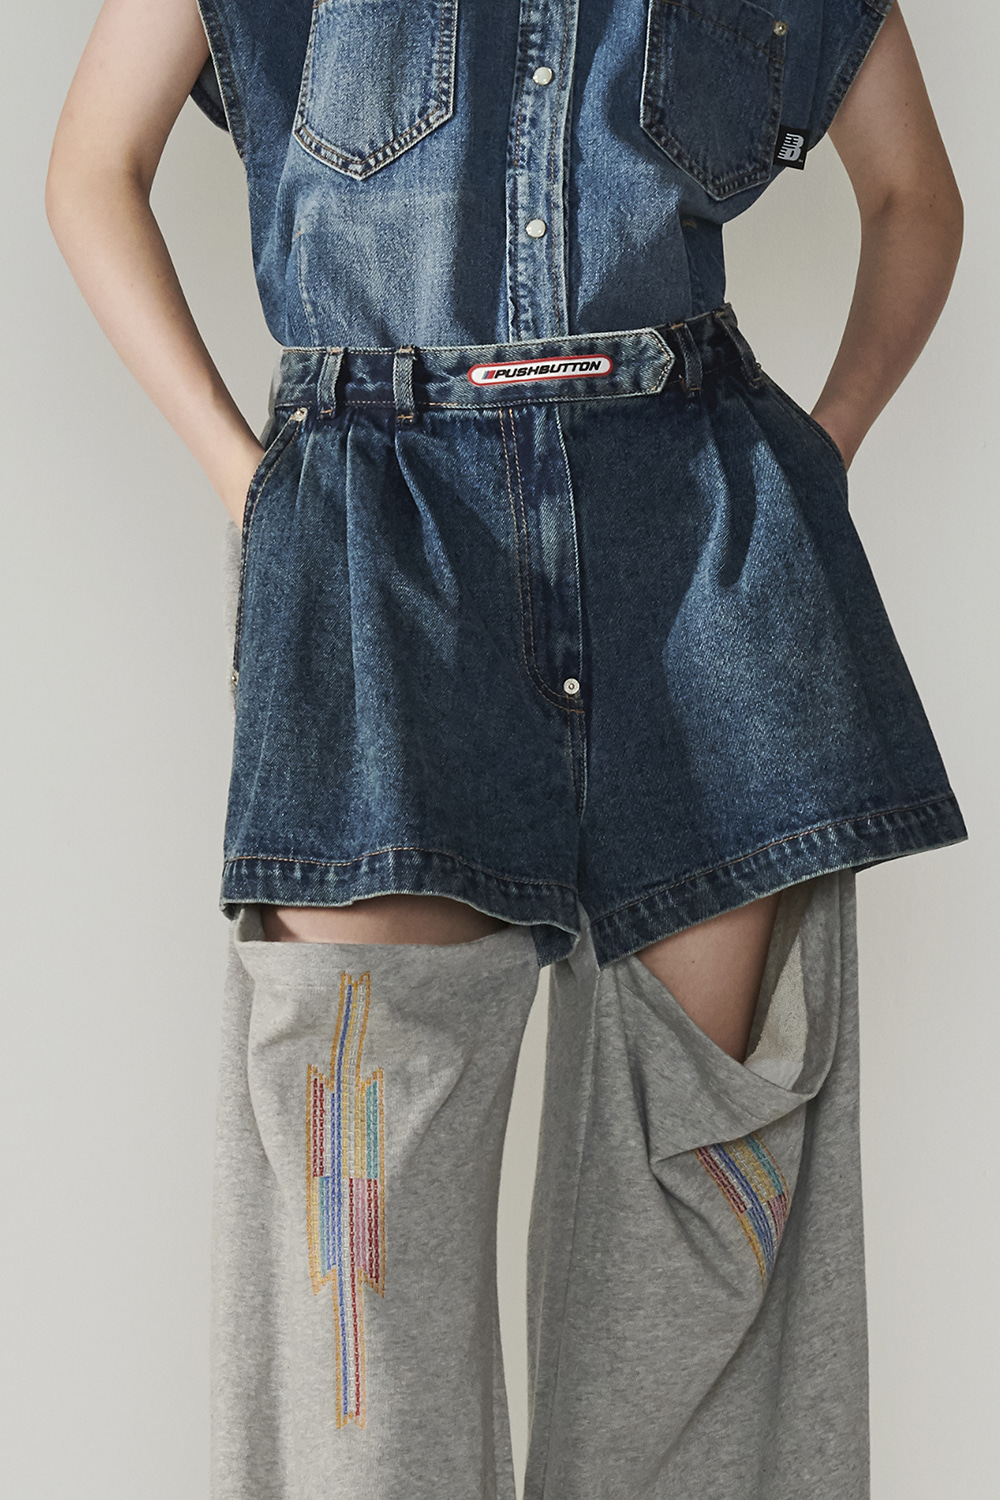 SS21 KNEE SLIT DENIM-JERSEY PANTS